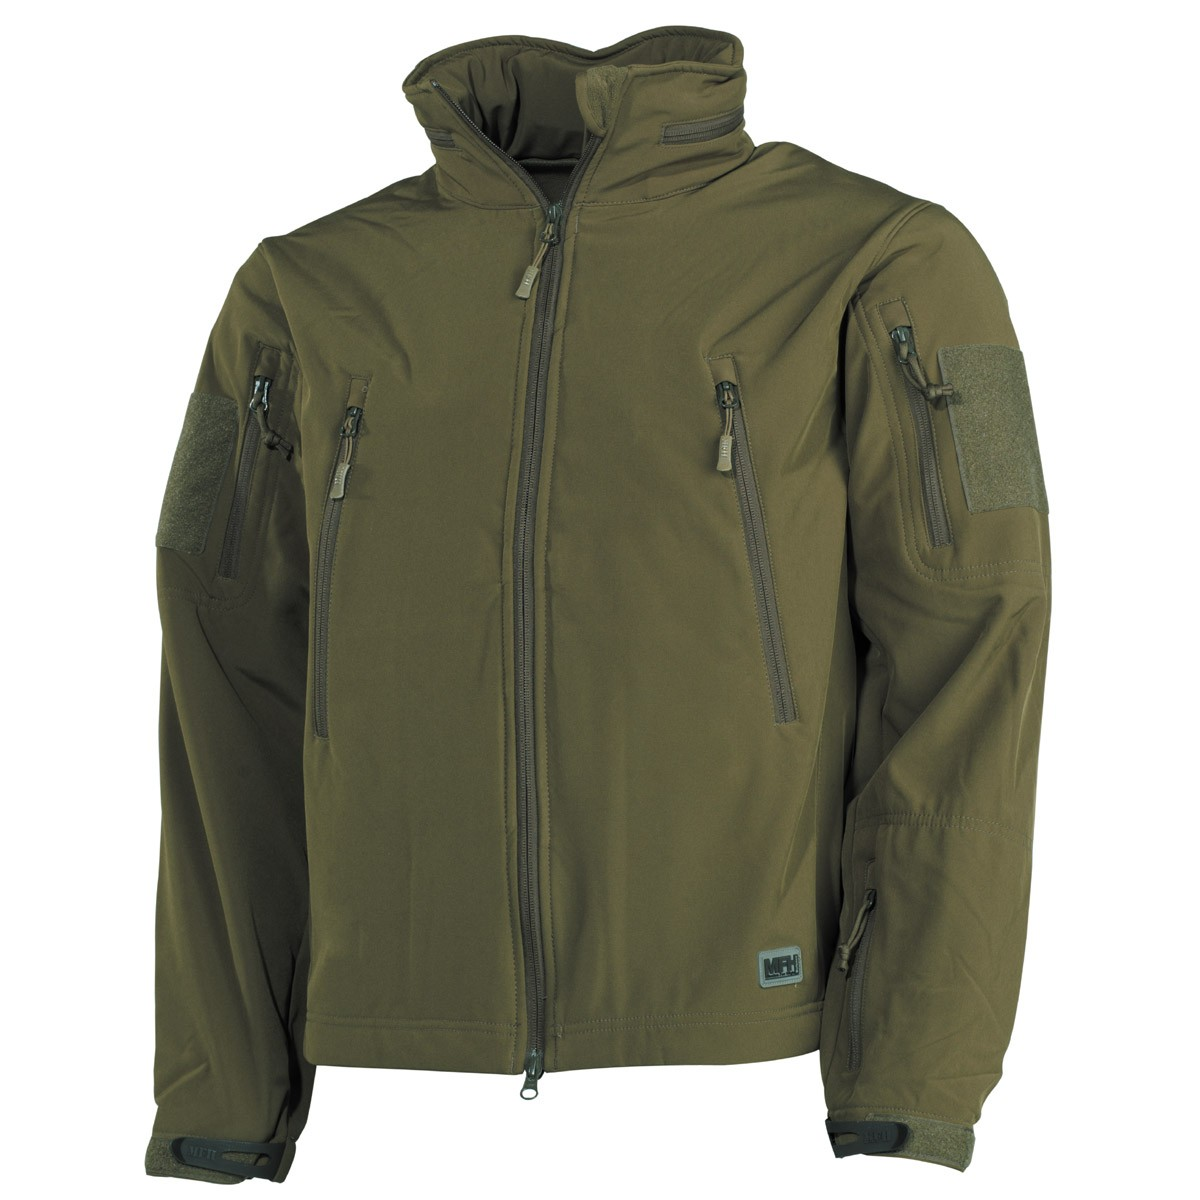 Bunda SCORPION Softshell, MFH - OLIVA